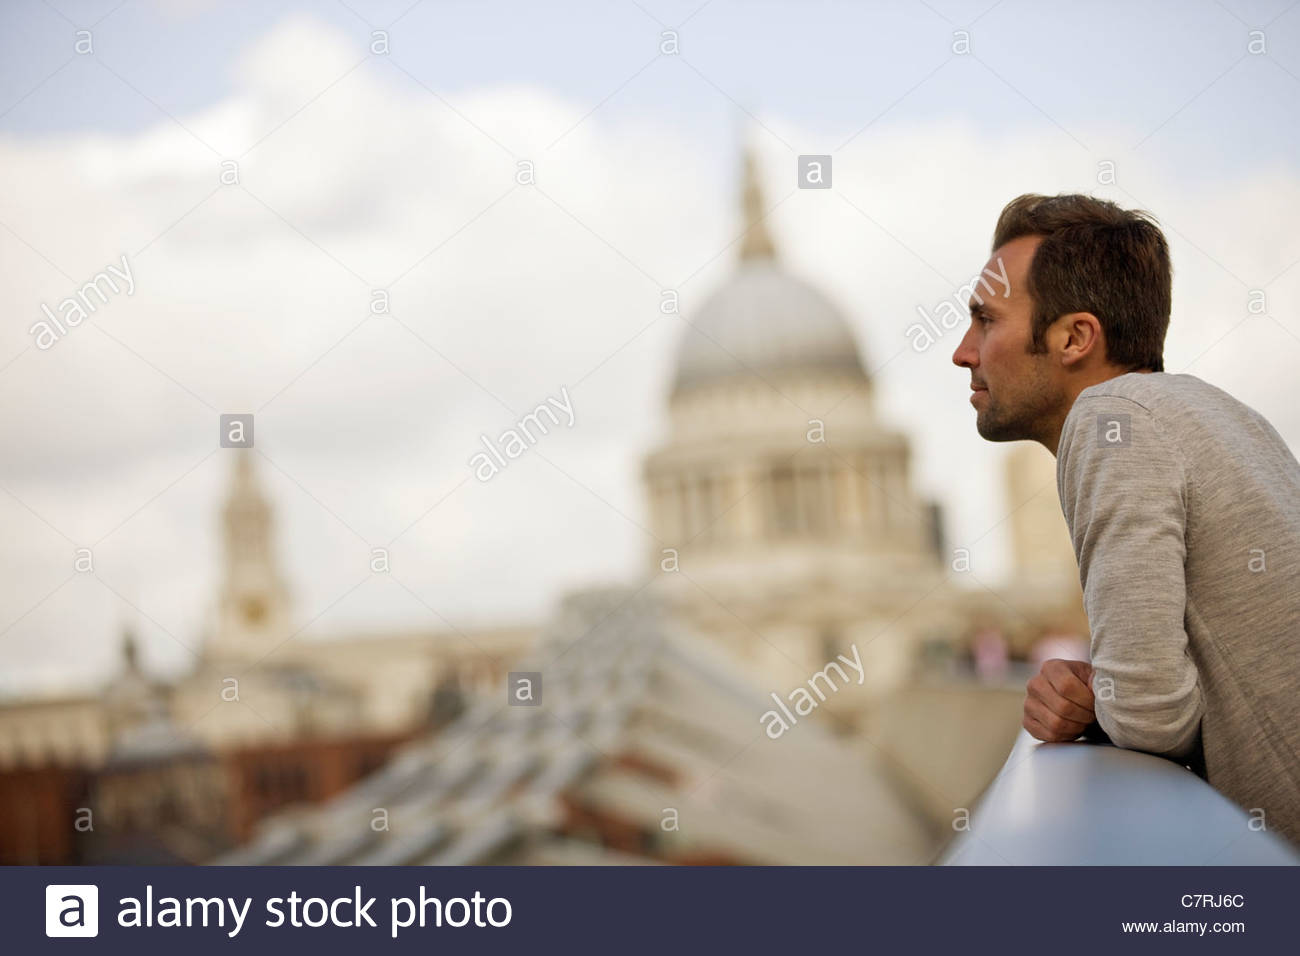 A mid-adult man standing on the Millennium Bridge, admiring the view - Stock Image